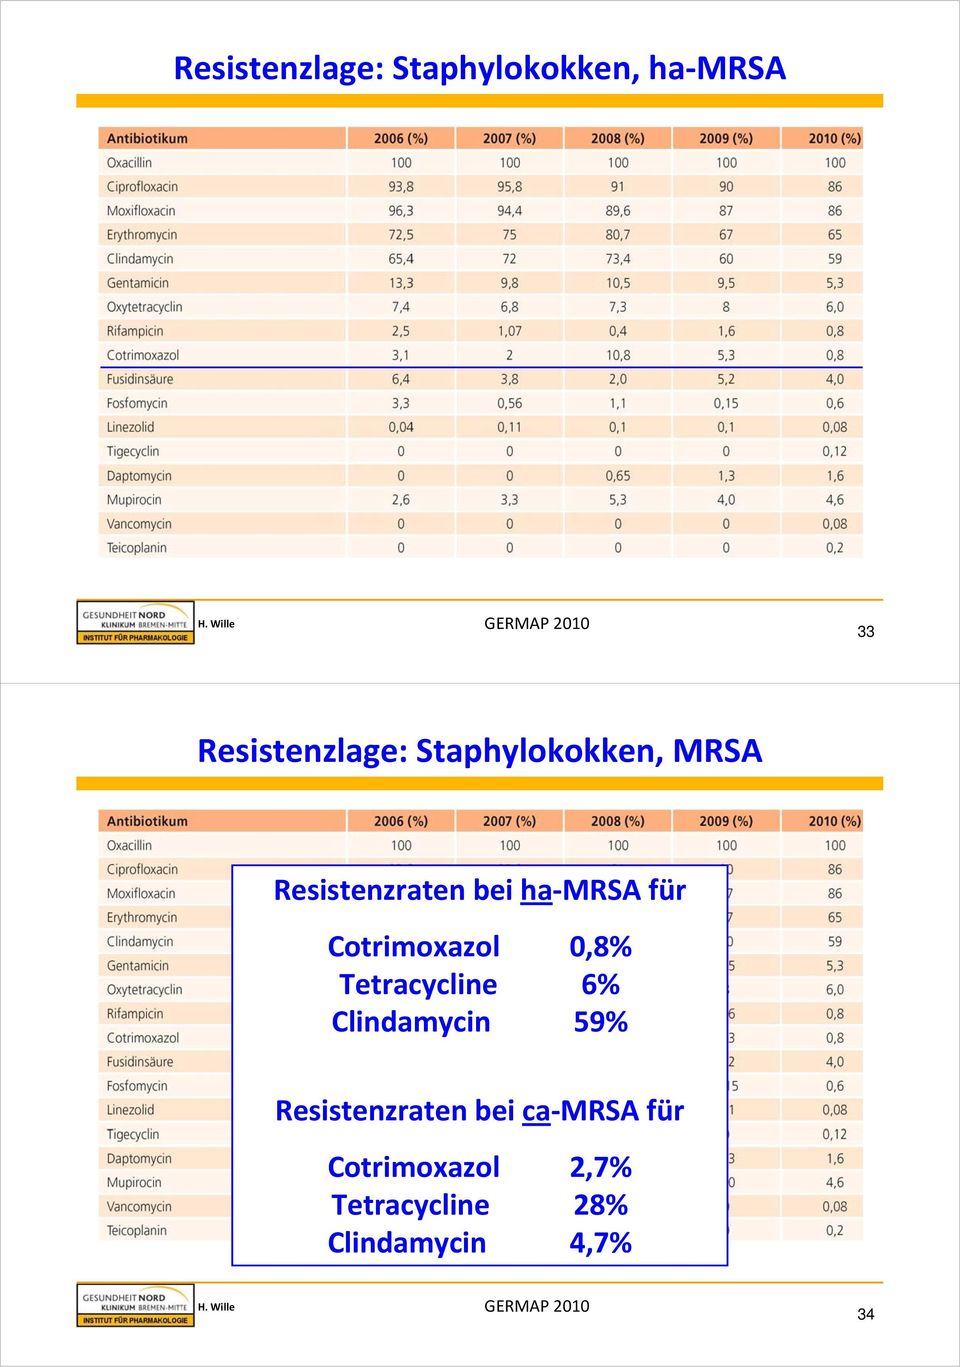 Cotrimoxazol 0,8% Tetracycline 6% Clindamycin 59% Resistenzraten